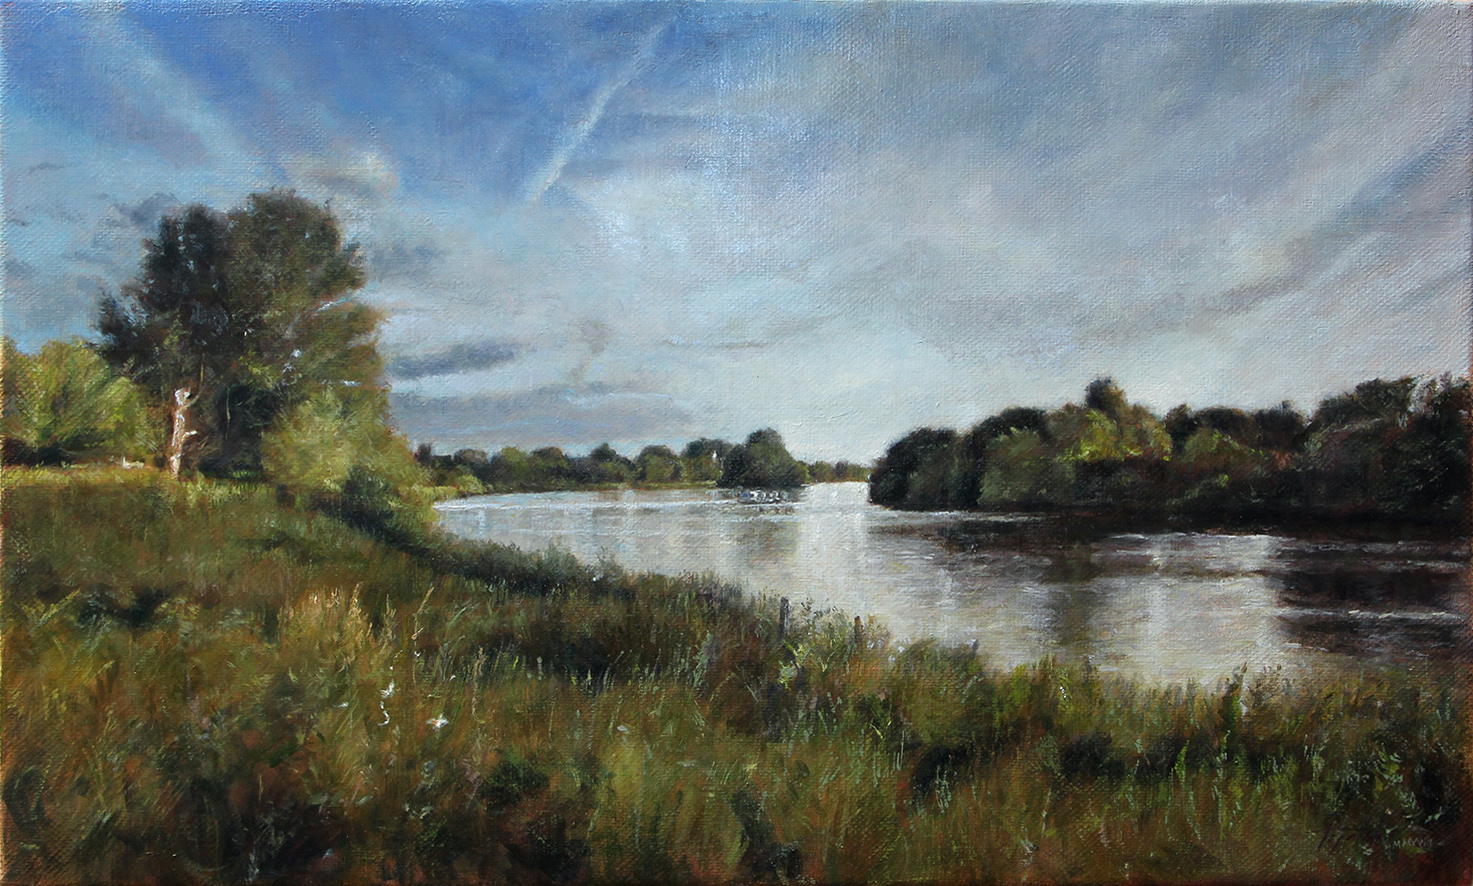 Fine Art - River Thames - Original Commissioned Oil Painting on Canvas by artist Darko Topalski